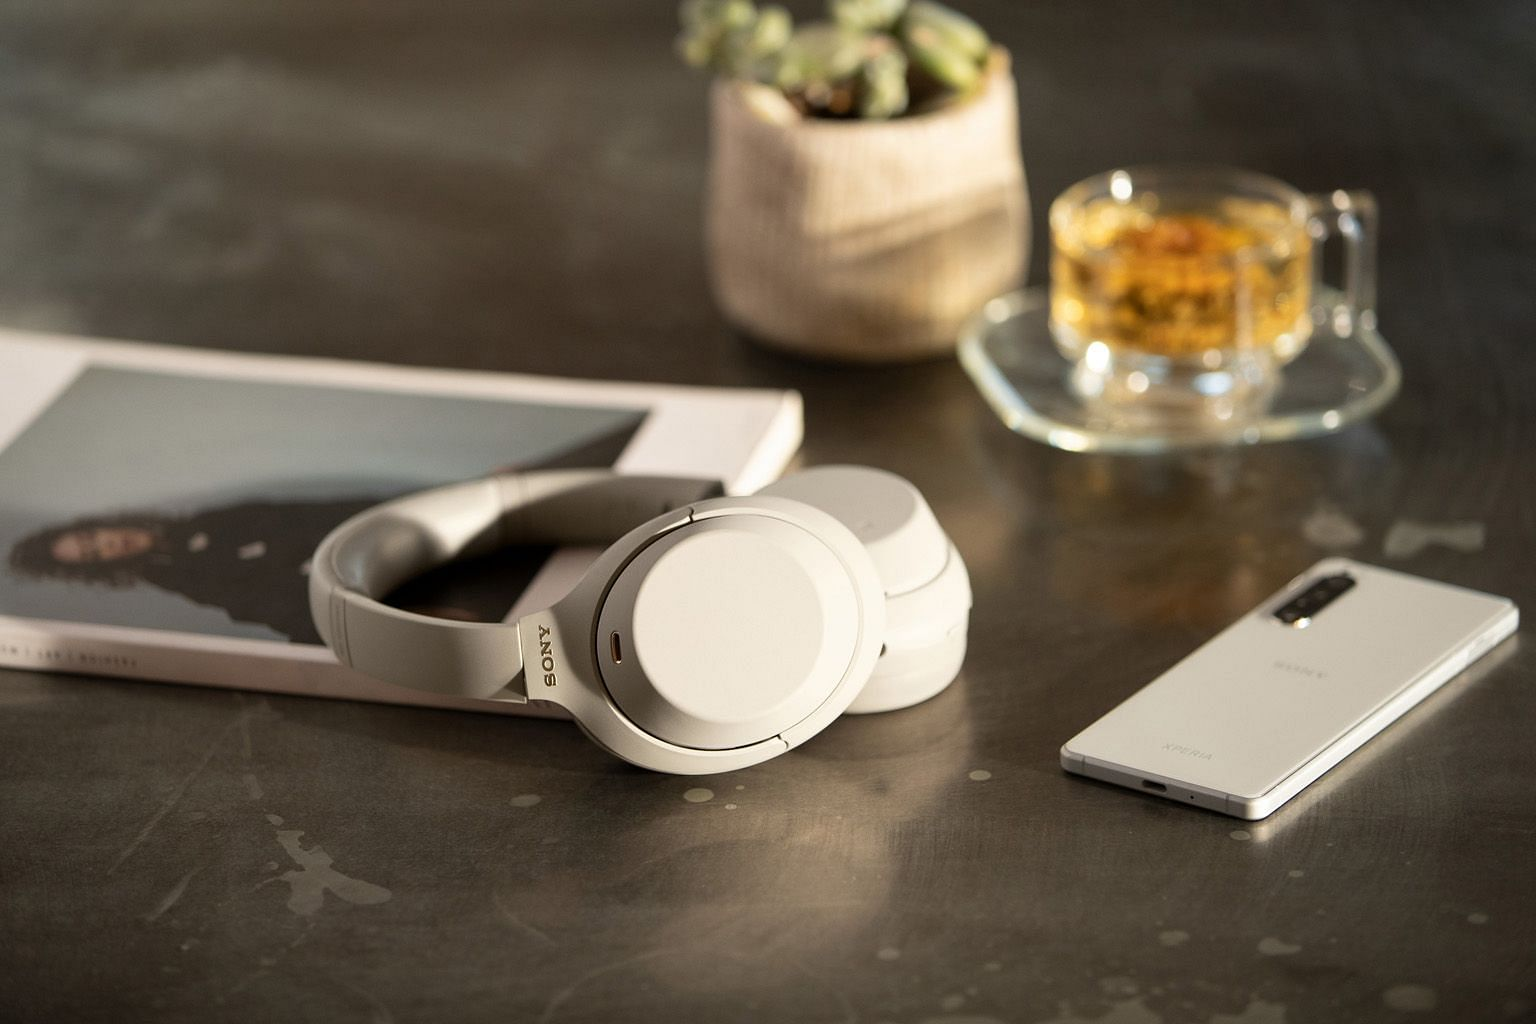 The Sony WH-1000XM4 can connect to two devices at the same time, and pauses music playback and lets in ambient sound when it detects you are talking.